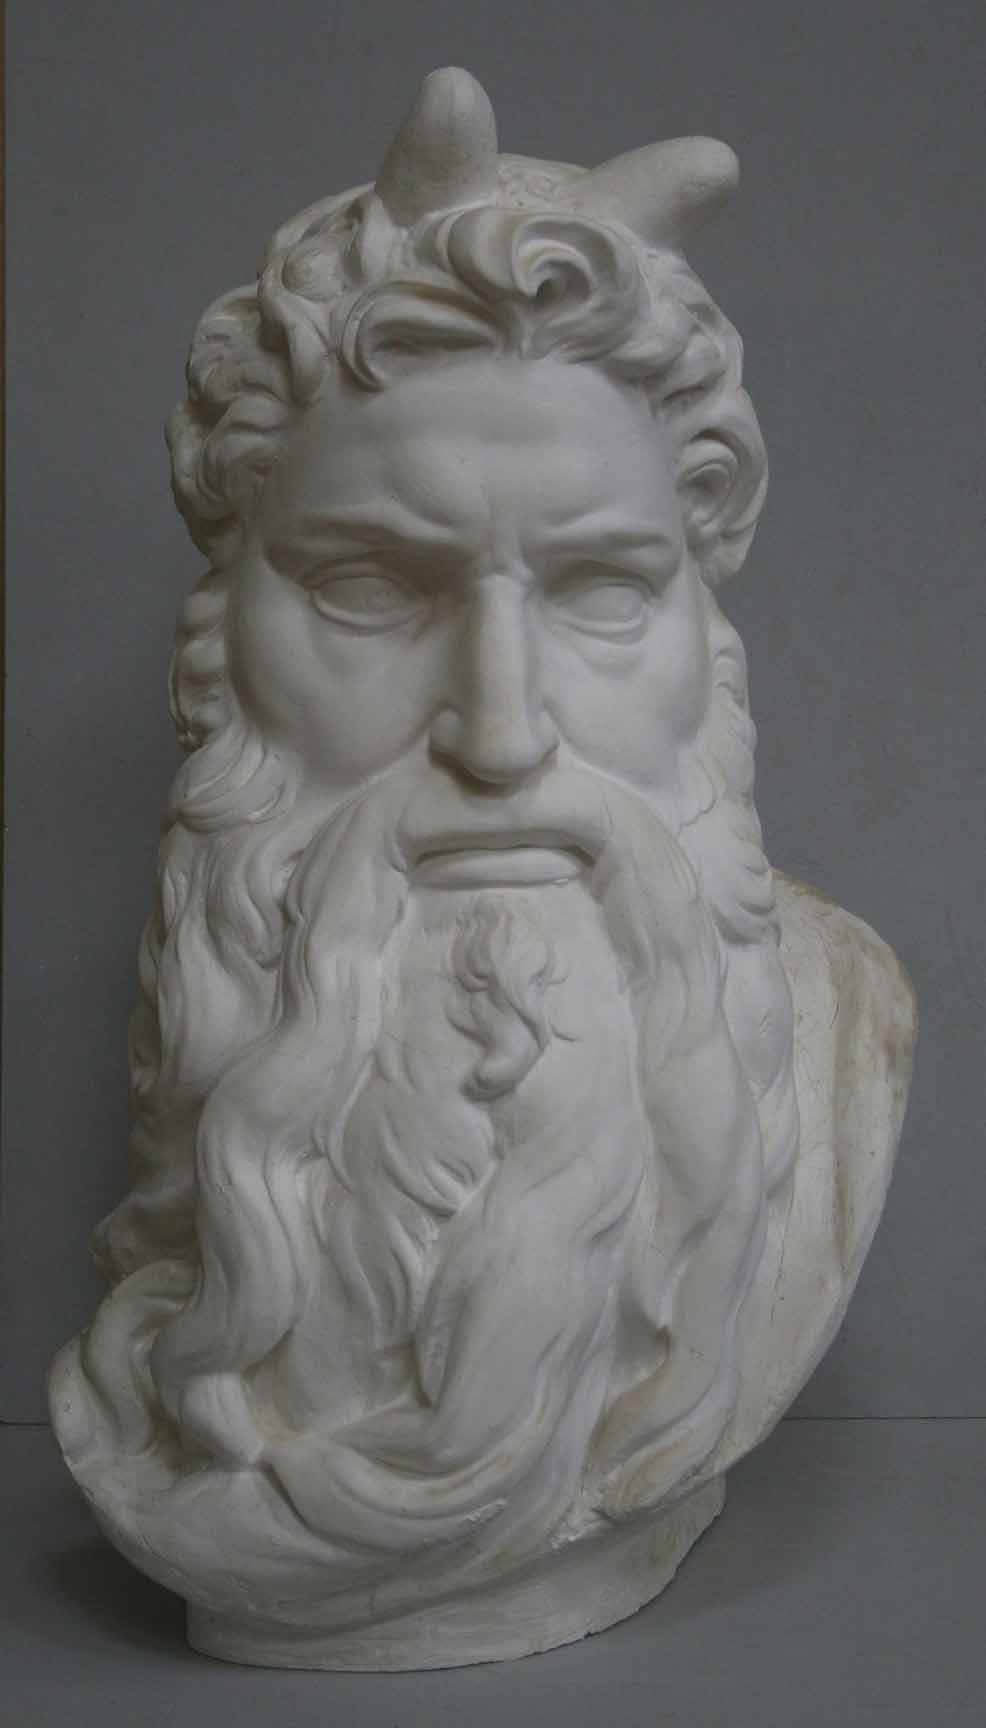 photo of plaster cast bust of man with curly hair and so-called horns and long beard on gray background